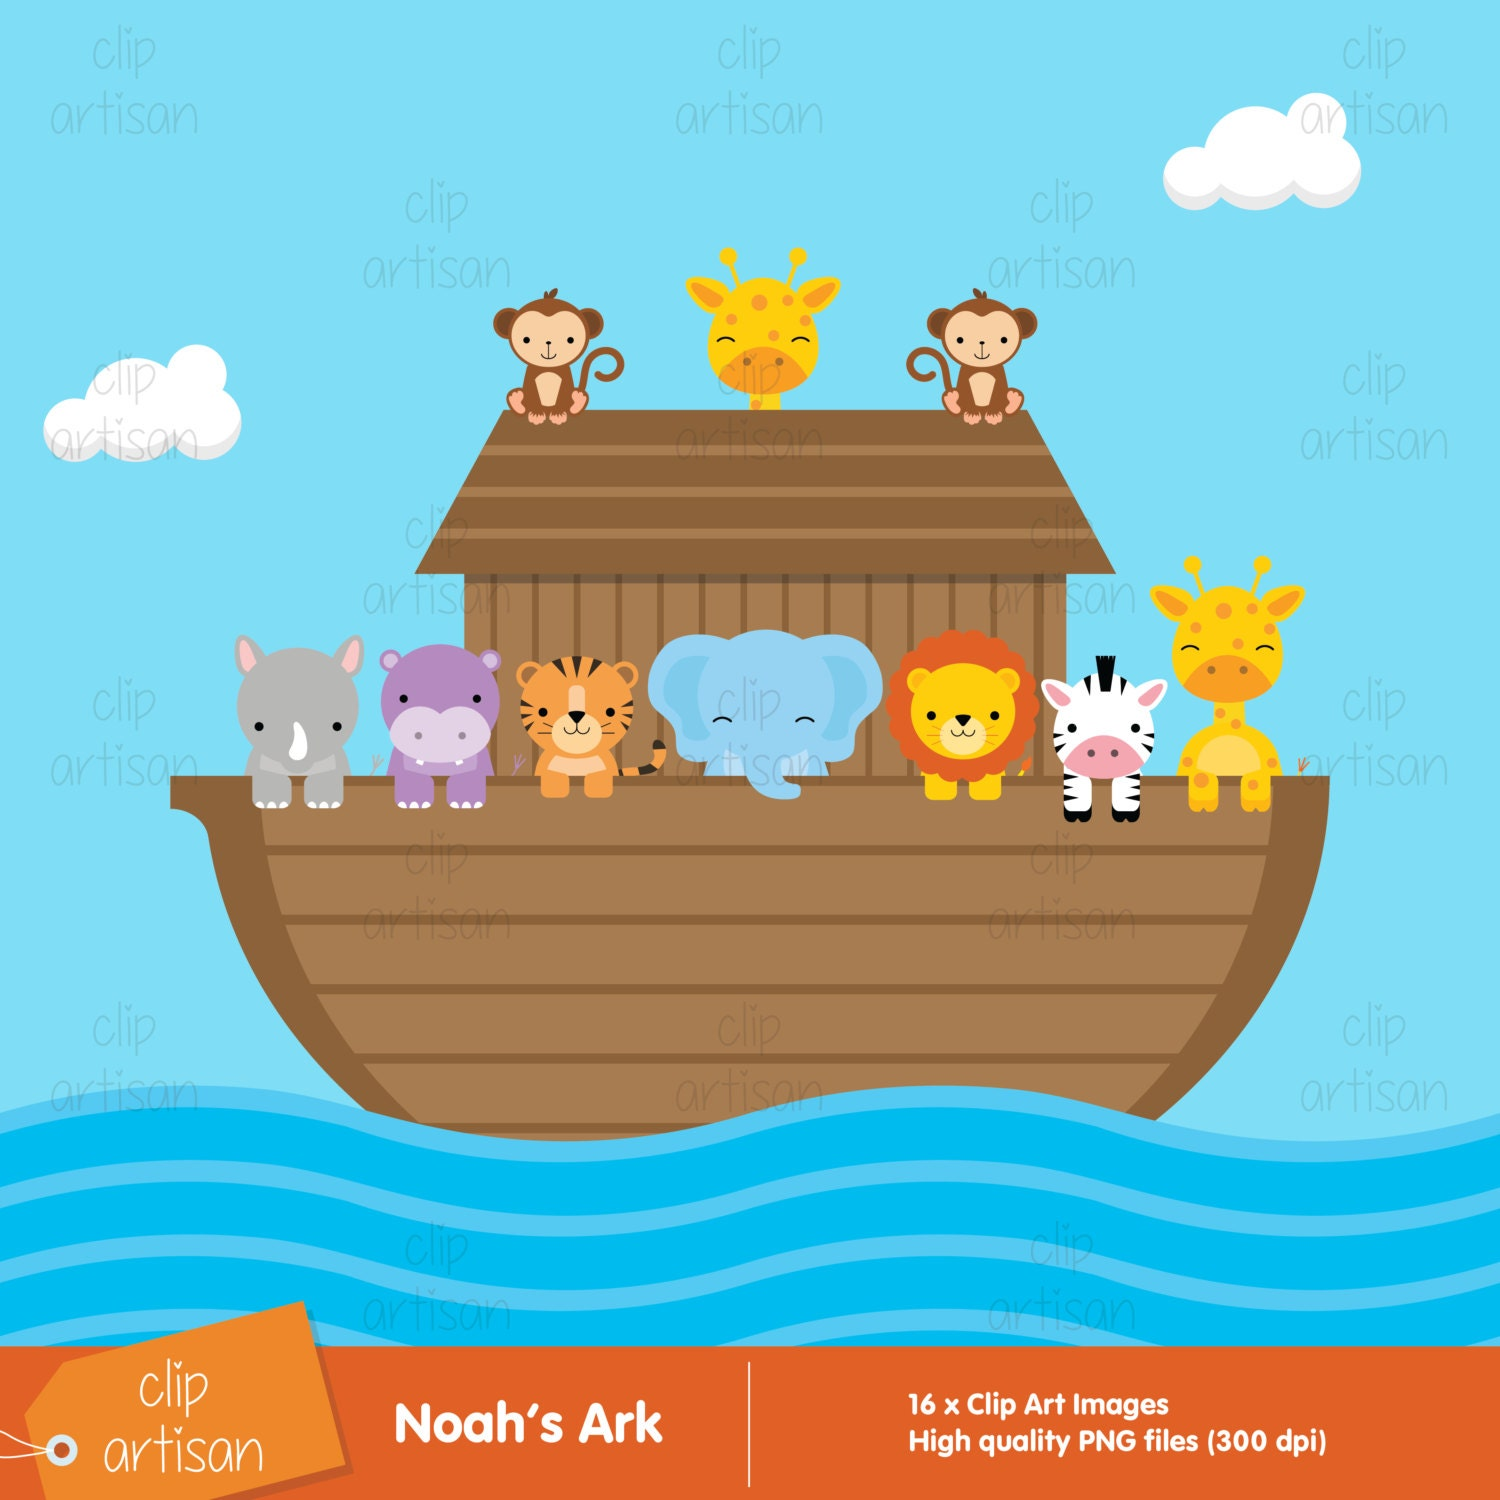 noah s ark clipart ark clip art animal clipart rh etsy com noah's ark clip art for children name tags noah's ark clipart free images